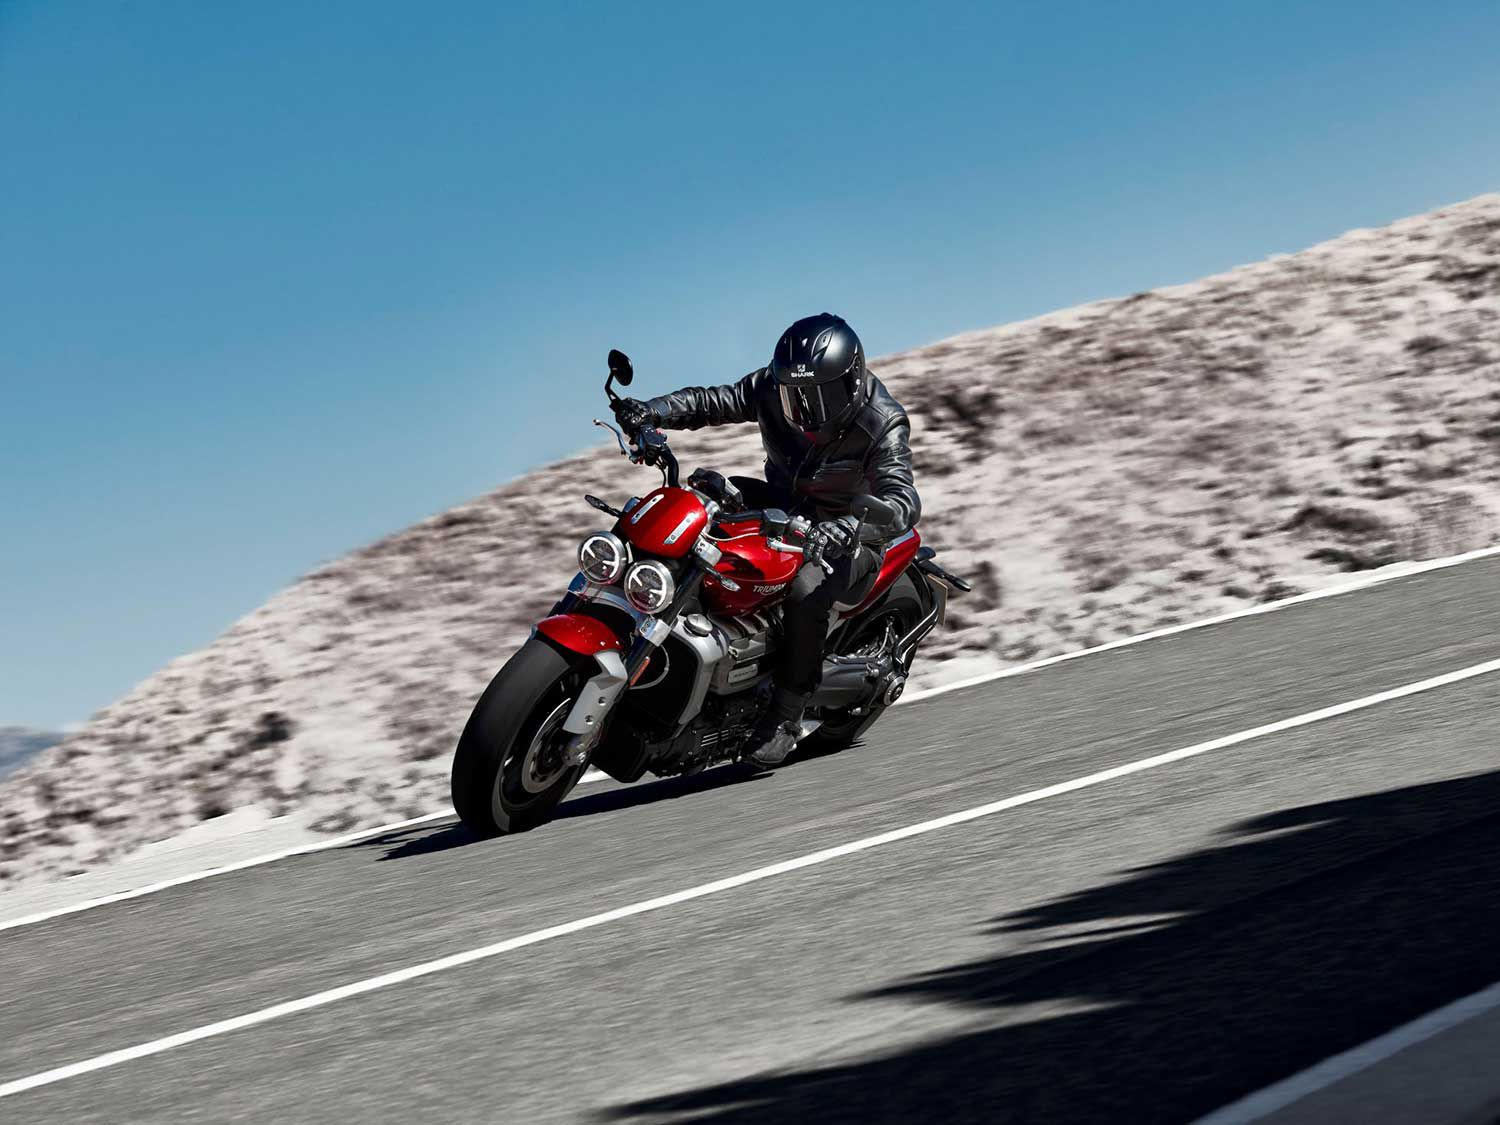 Available lean angle in corners appears to be generous for bikes of the Rocket's ilk. We'd like to round up a Ducati Diavel 1260 and a Yamaha VMAX for a musclebike shootout when the Rocket 3 hits our shores in January.